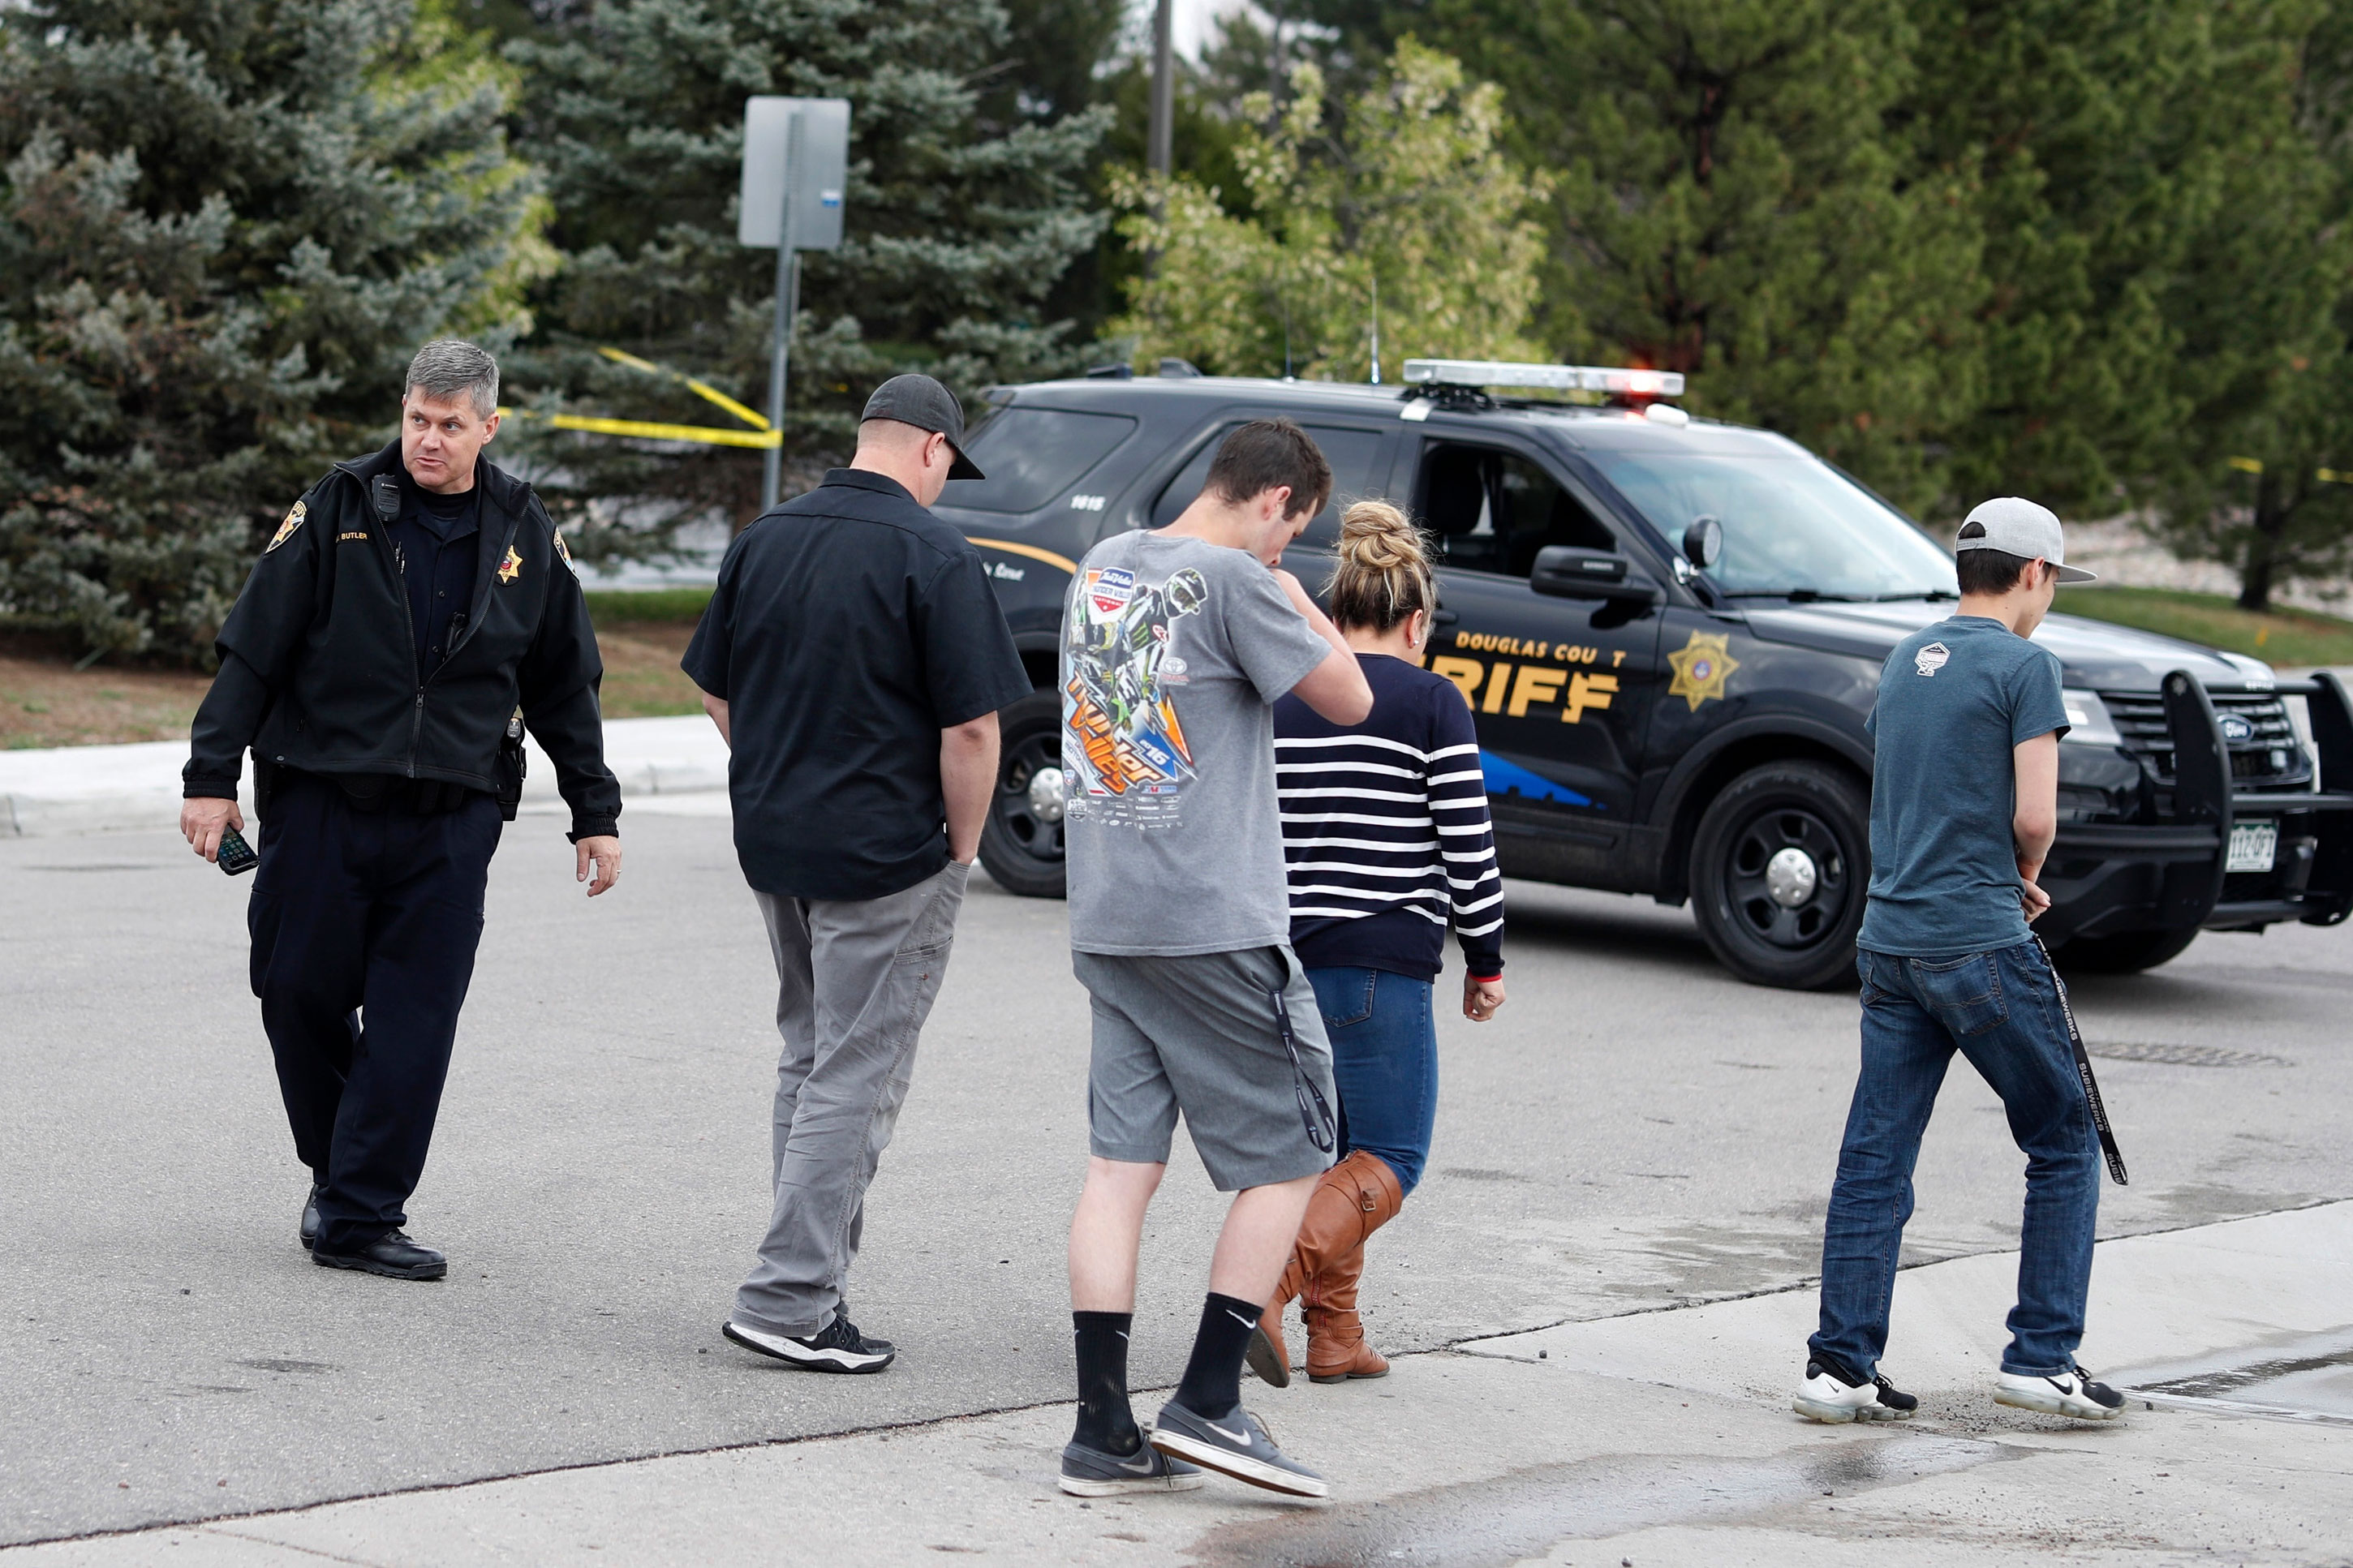 Photo: STEM Shooting 14 | STEM School, Kids And Deputy - AP